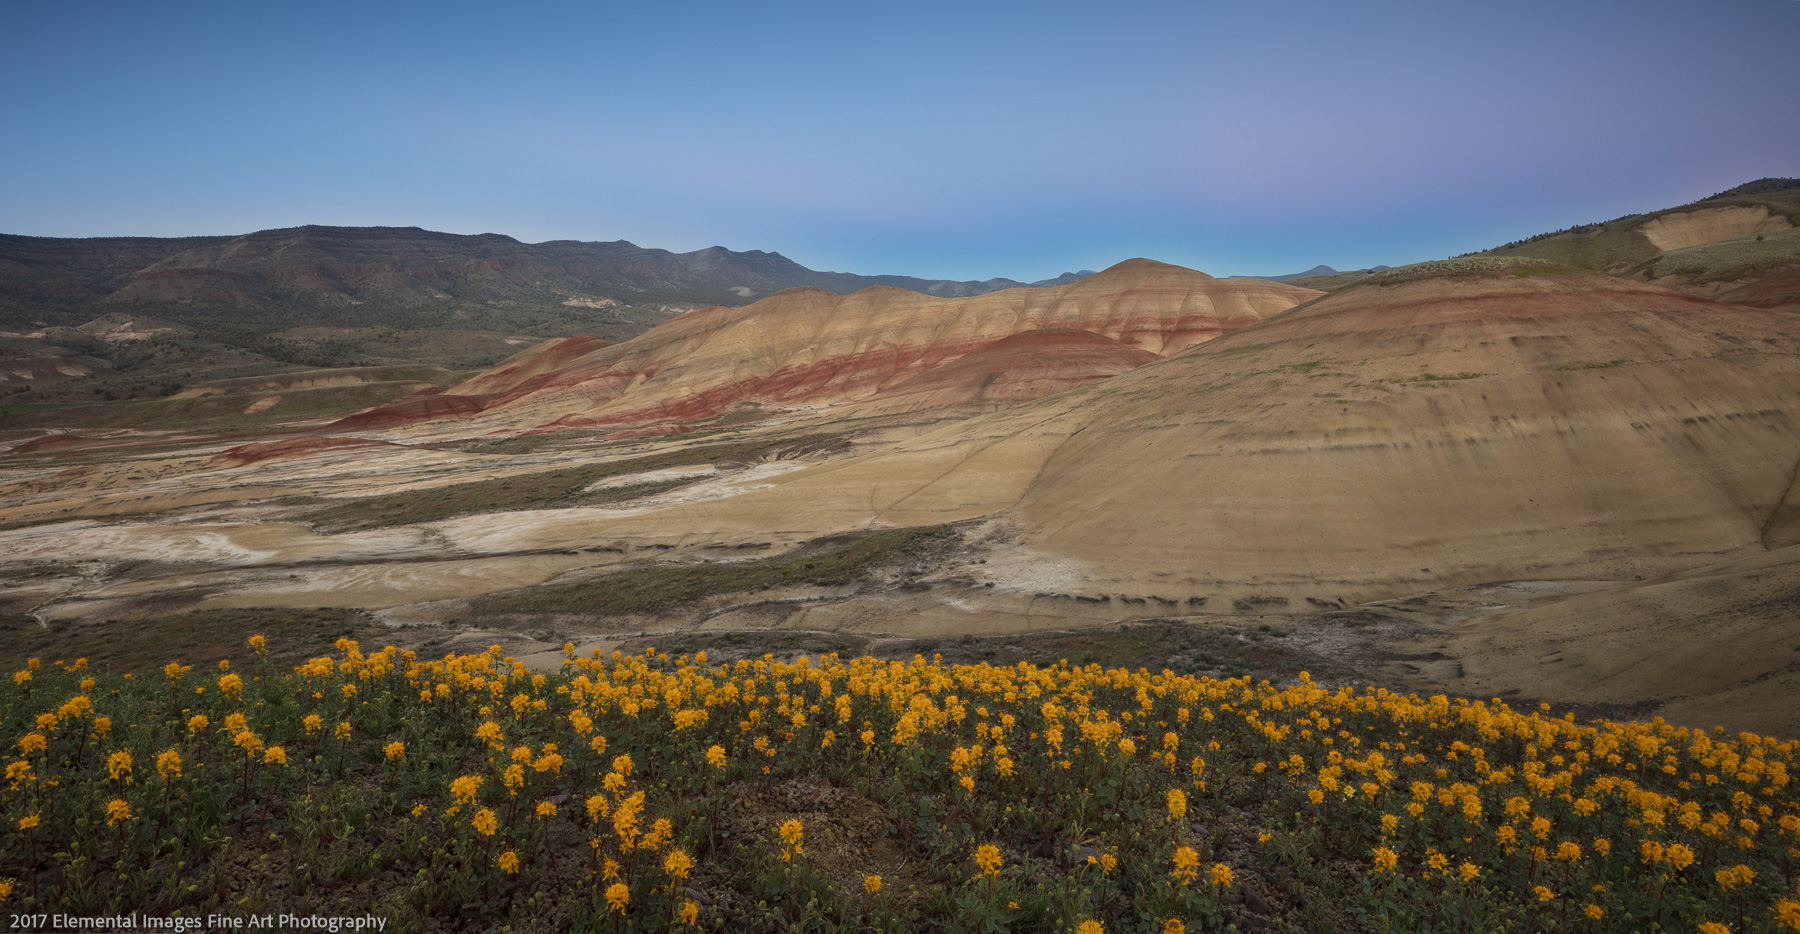 Last Light on the Painted Hills | John Day Fossil Beds National Monument | OR | USA - © 2017 Elemental Images Fine Art Photography - All Rights Reserved Worldwide